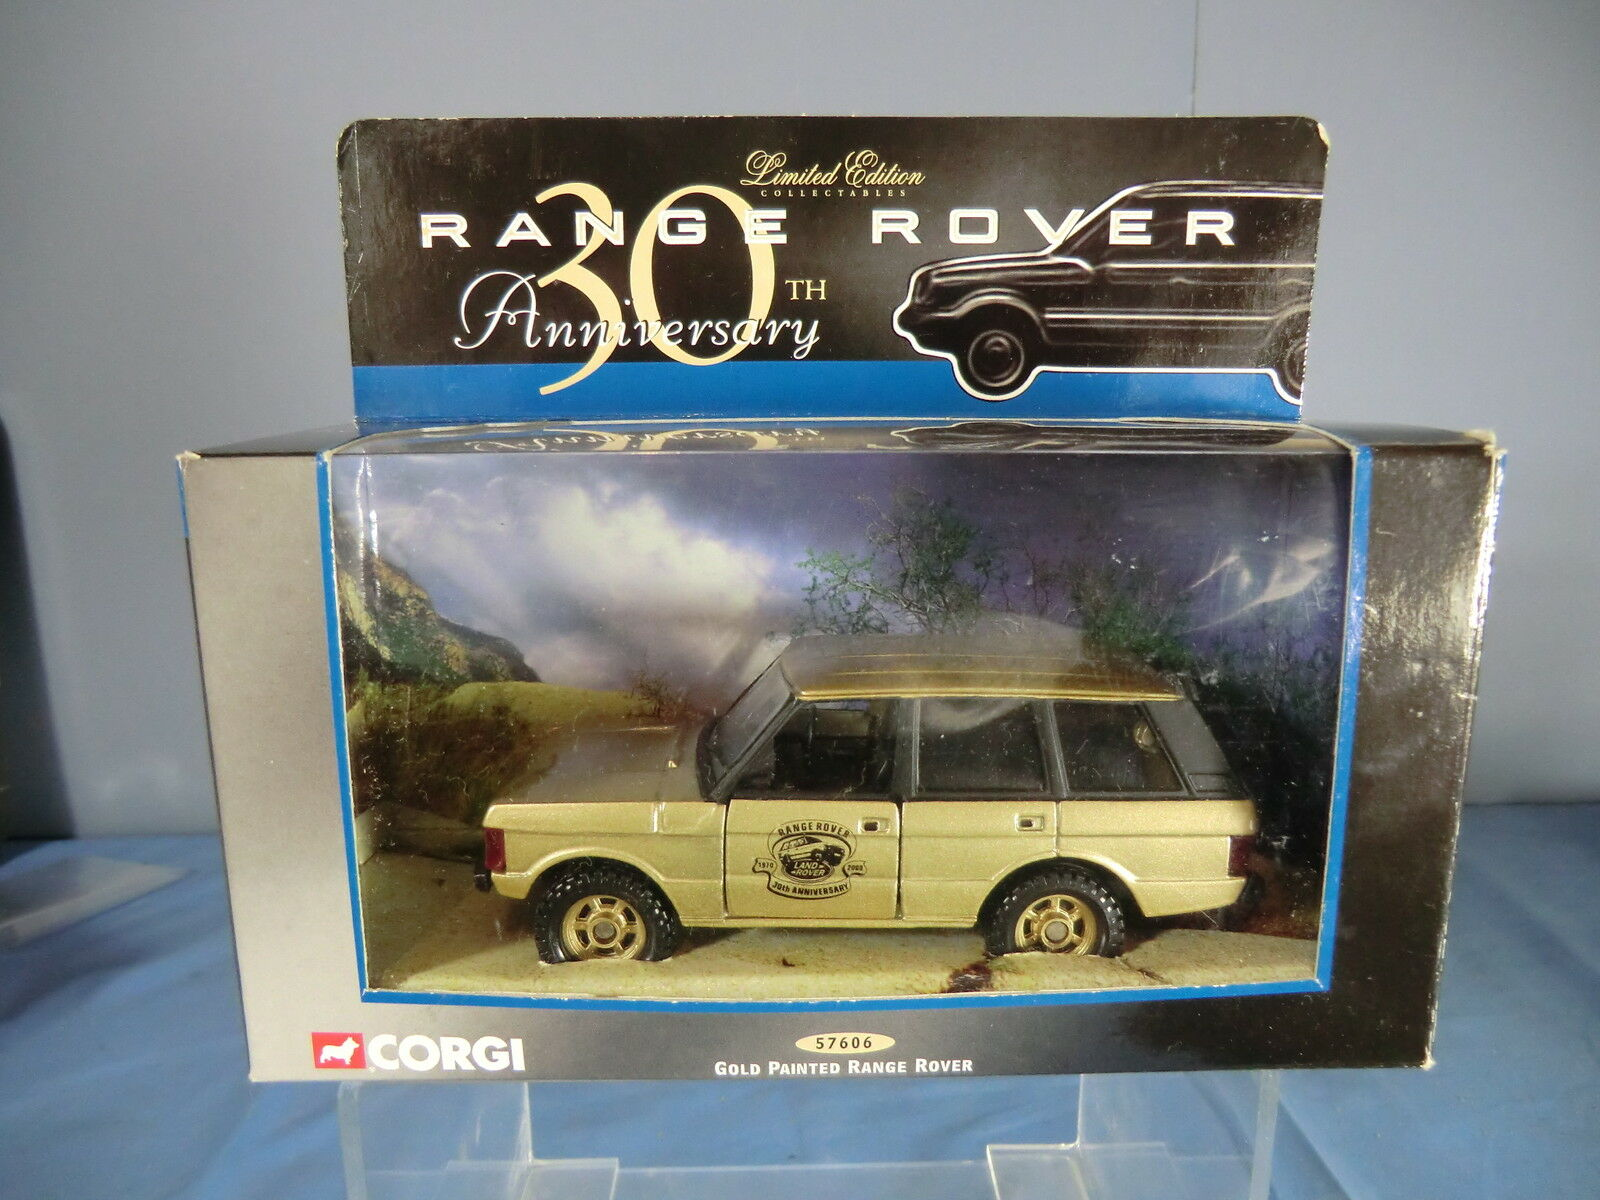 CORGI MODEL No.57606  RANGE ROVER  30th ANNIVERSARY gold  LTD.EDITION VN MIB